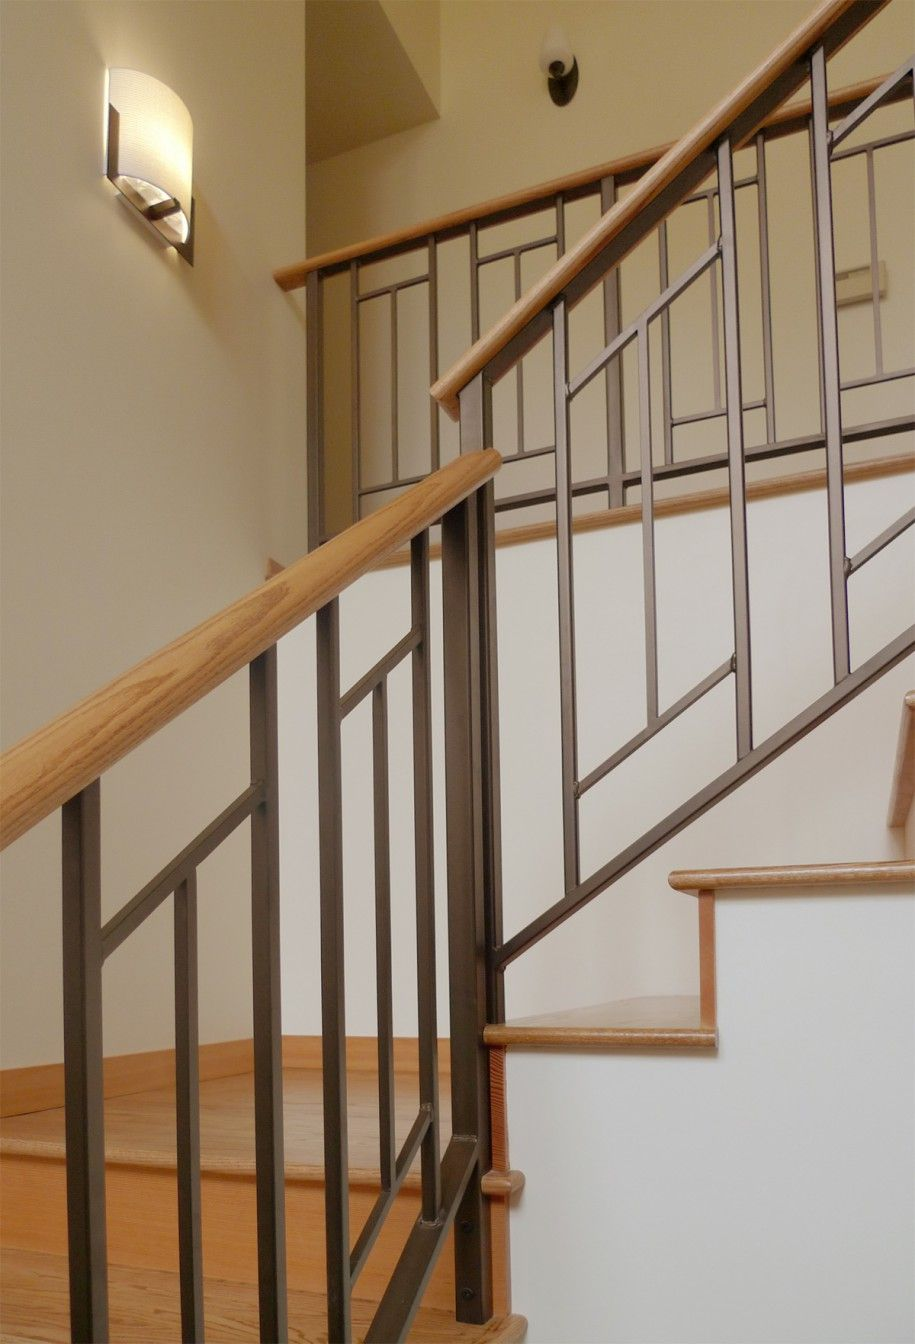 Furniture Simple And Sleek Contemporary Staircase Railings With